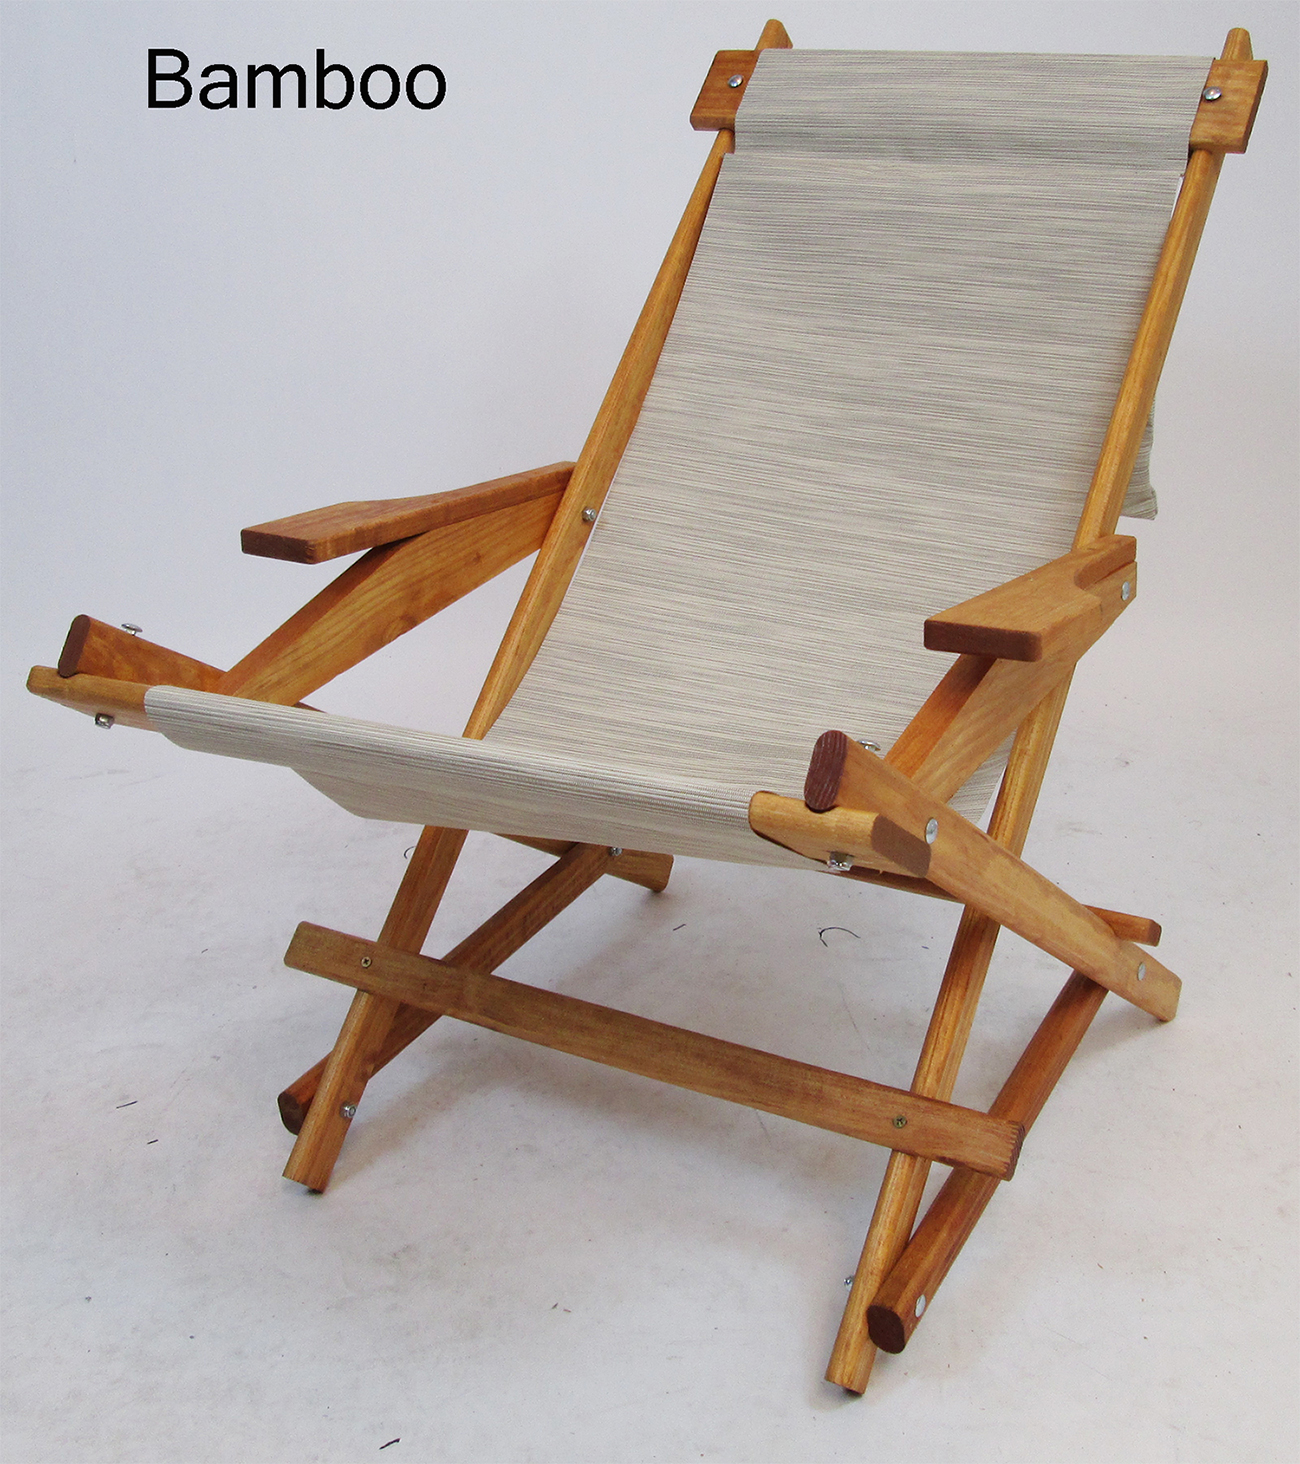 ... Chairs & Accessories > Wooden Camping Chairs > Wooden Folding R...